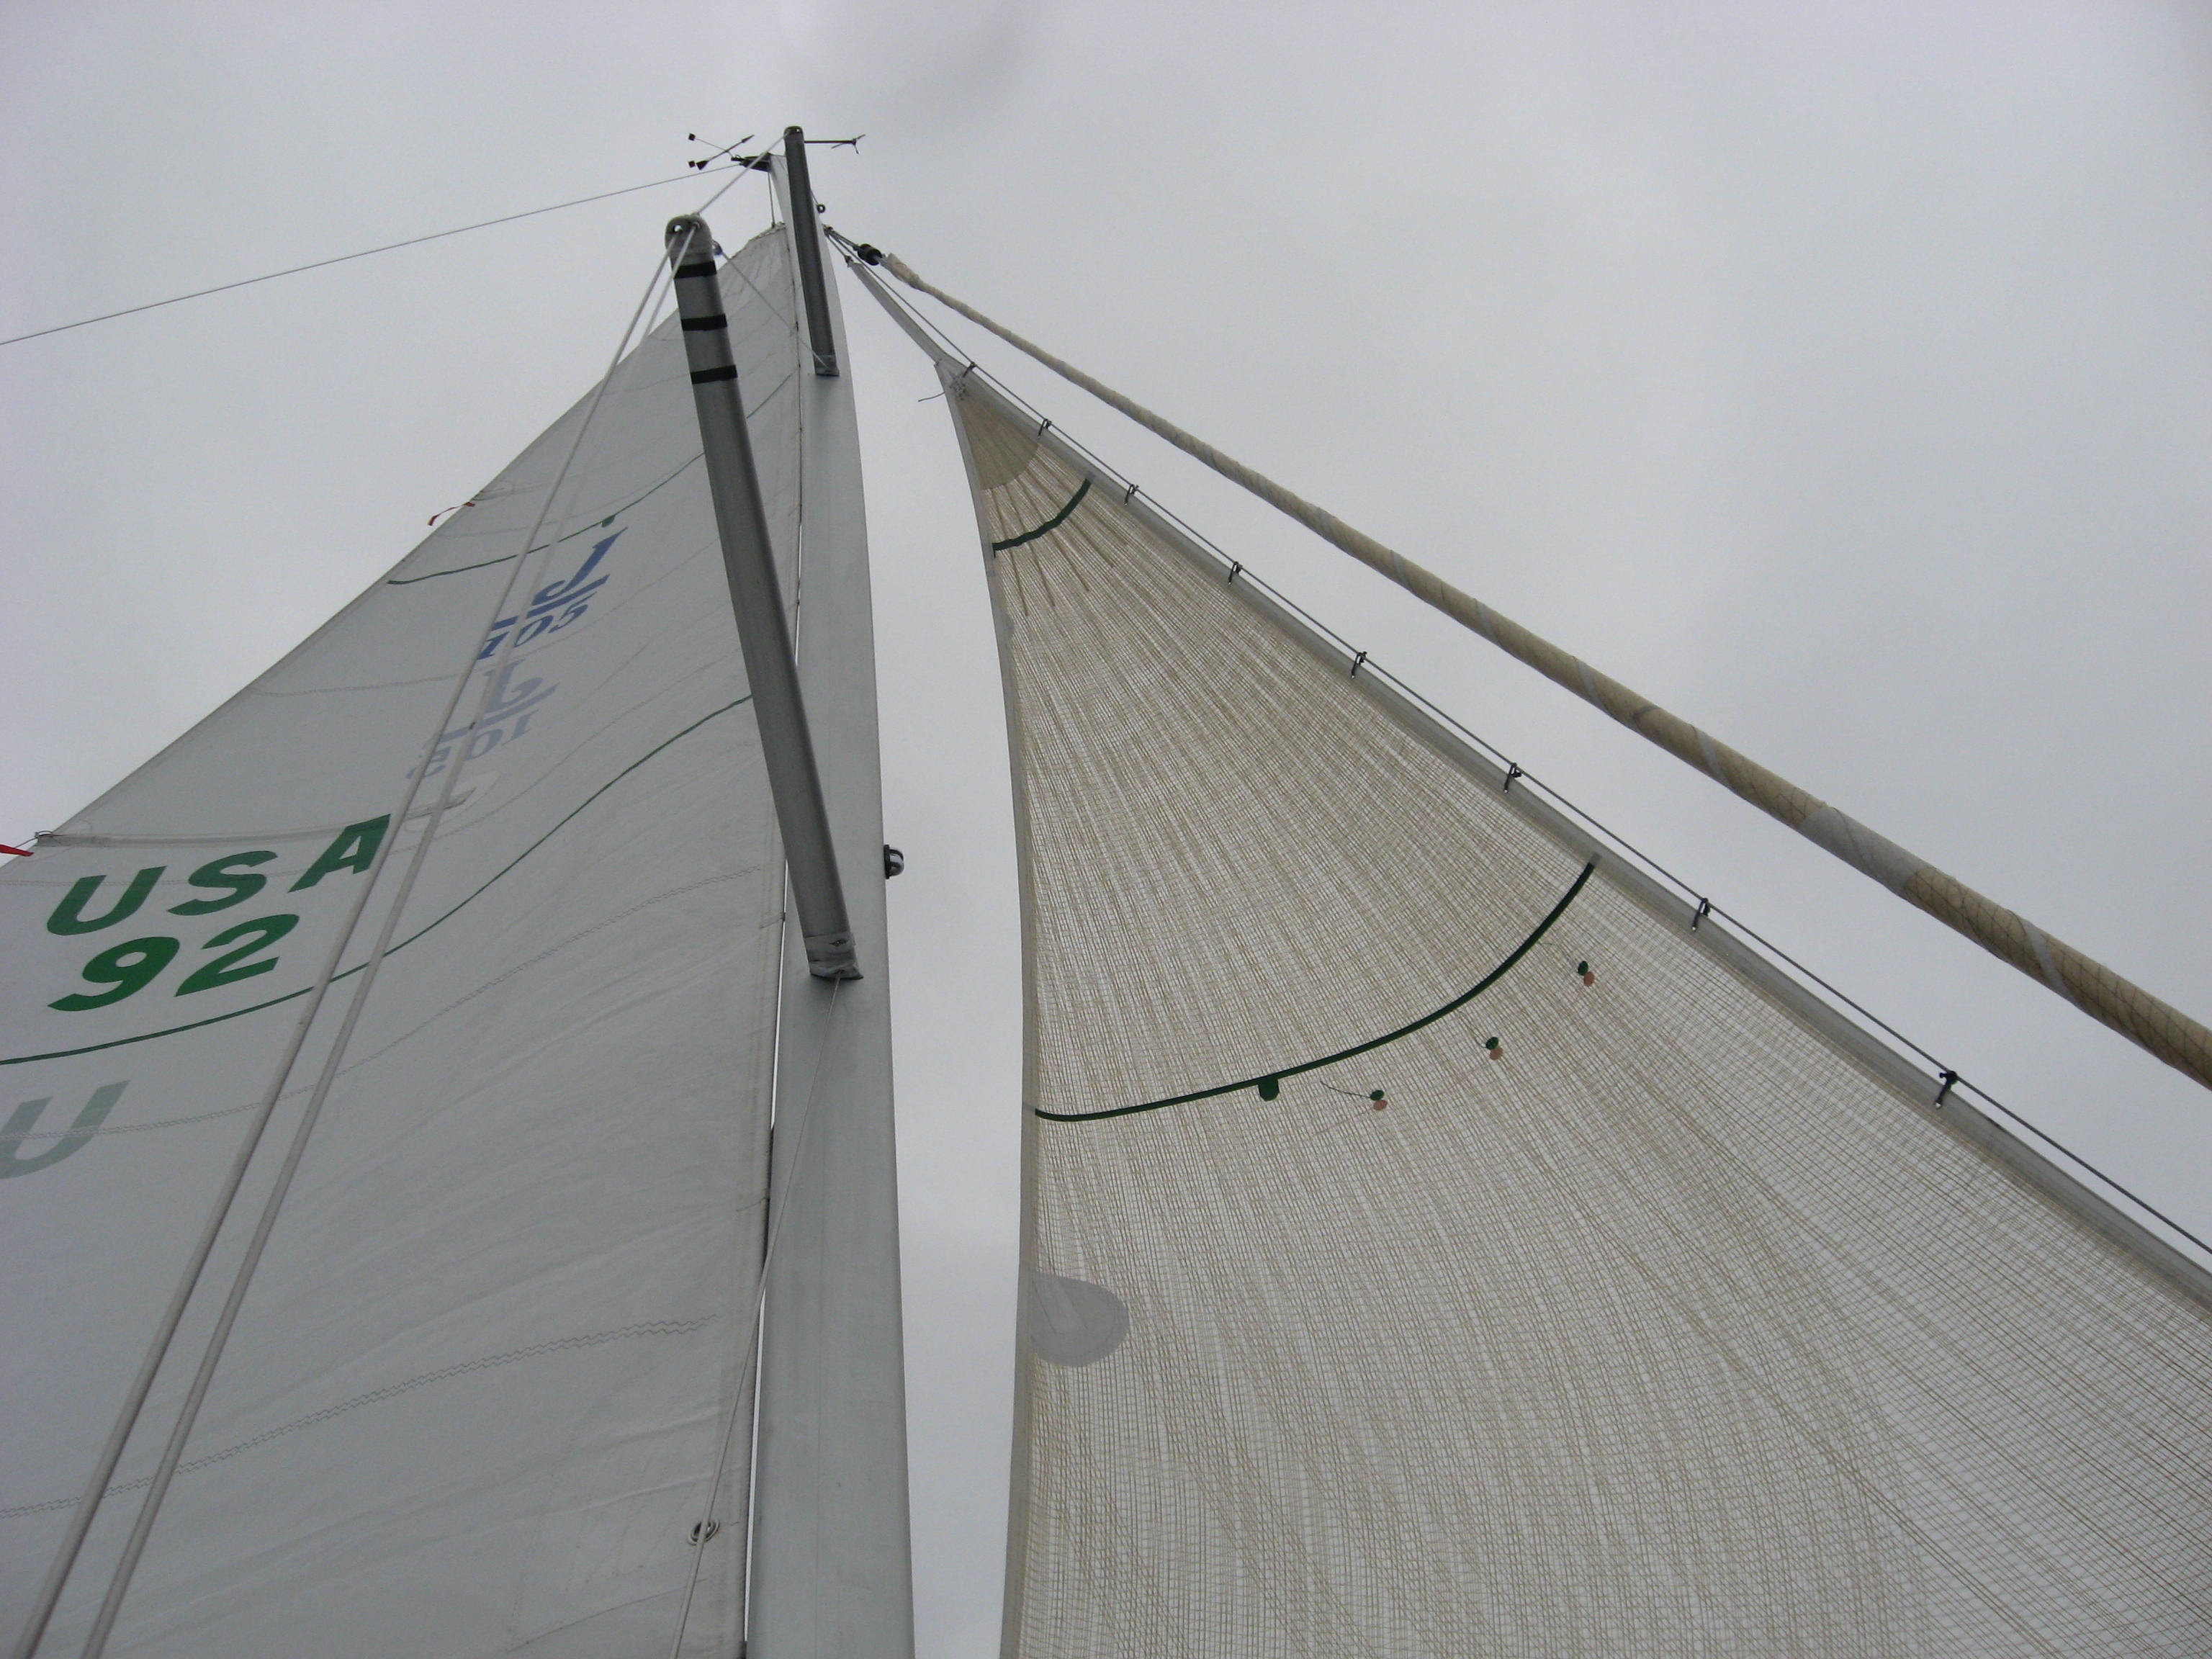 A Solent stay is a great way to get a smaller sail set when it is too windy for the Jib on the furler